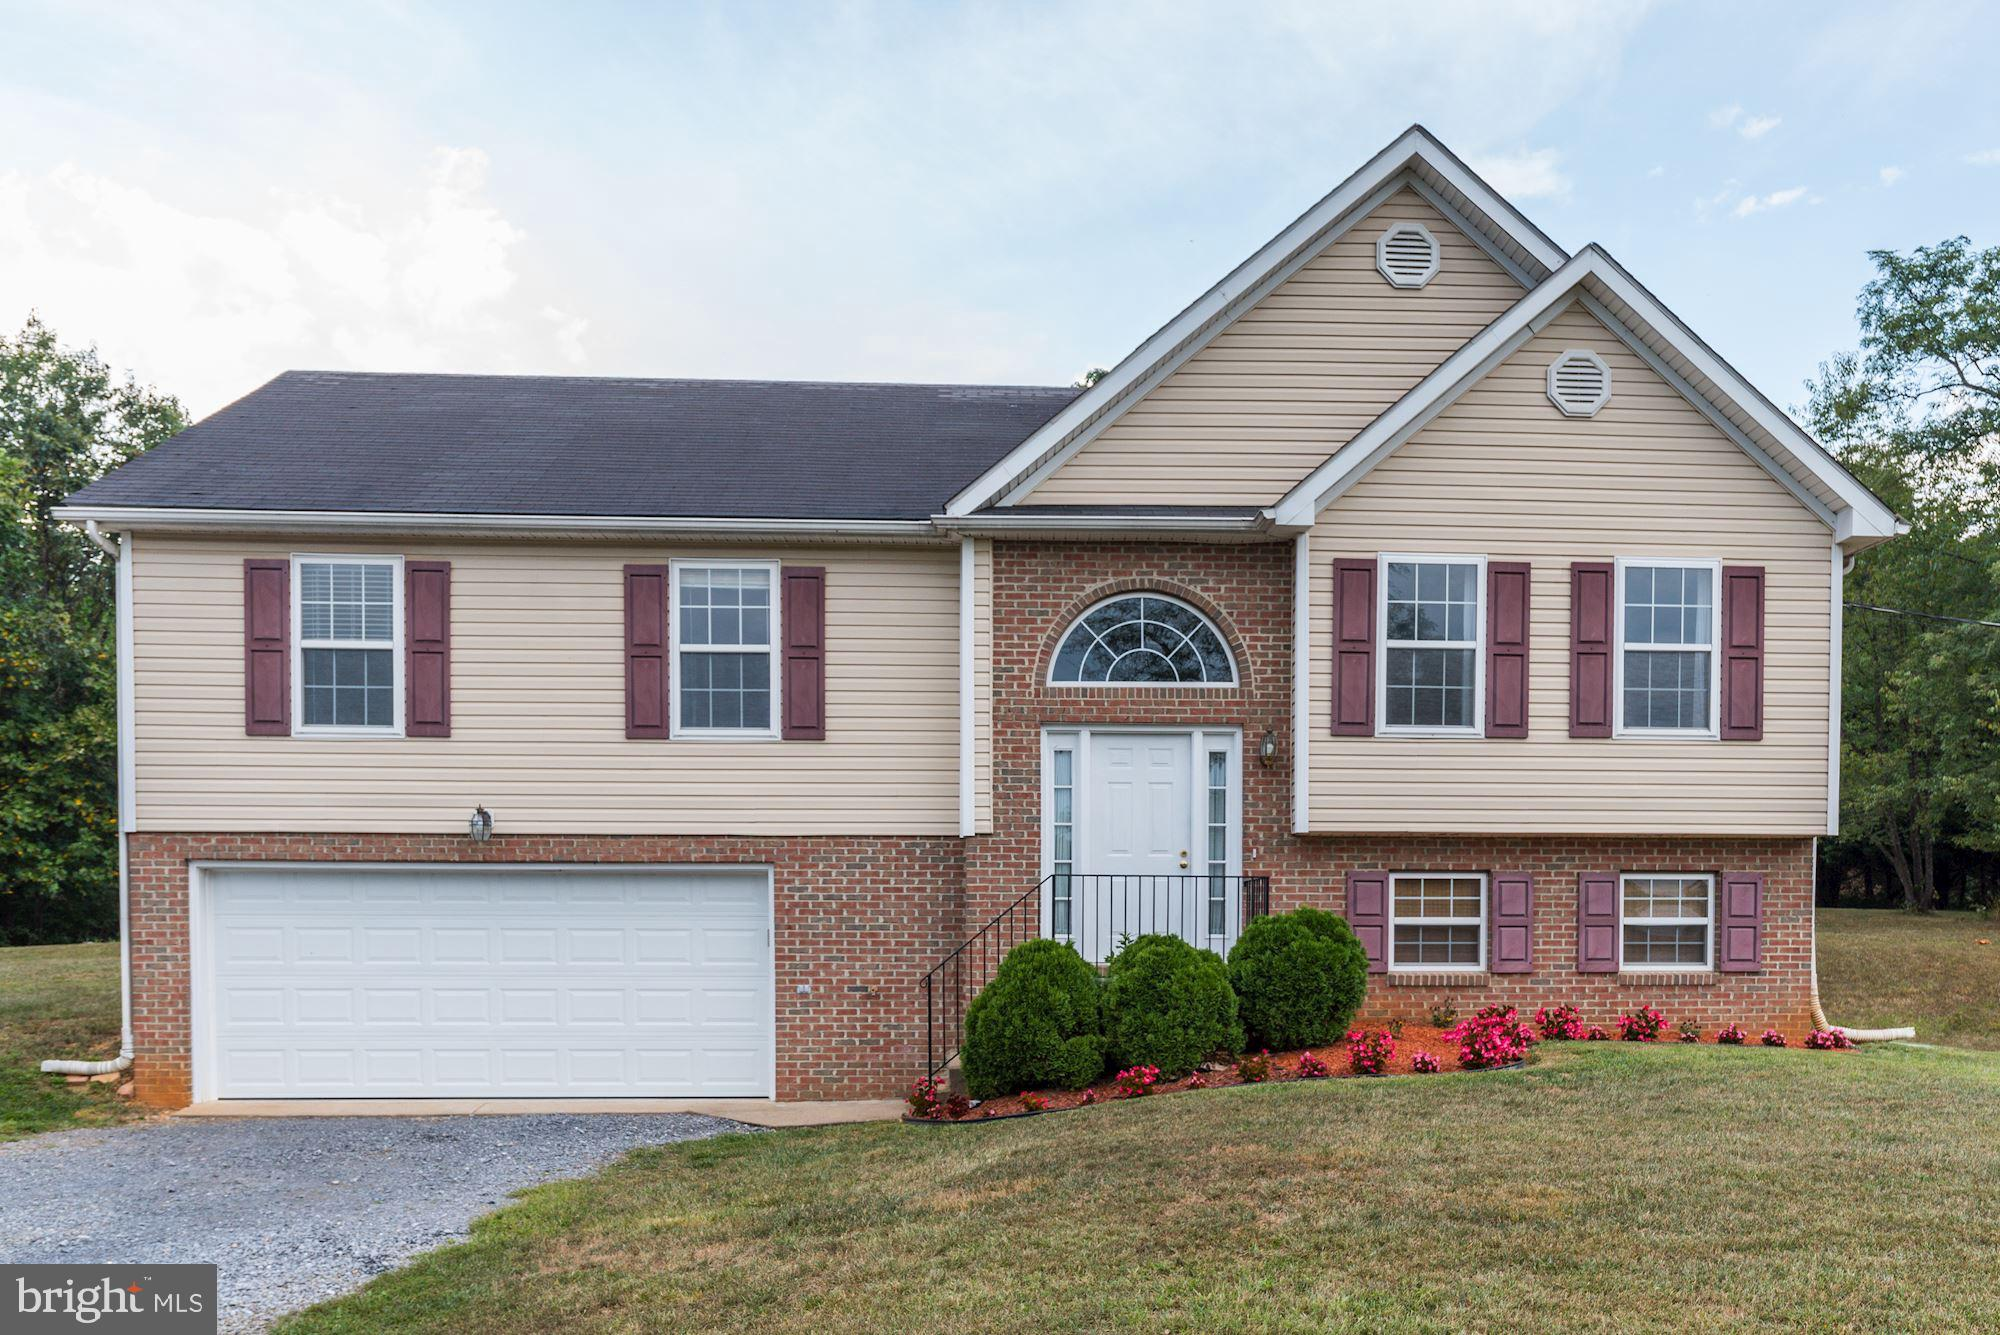 277 ORCHARD DALE, CLEAR BROOK, VA 22624